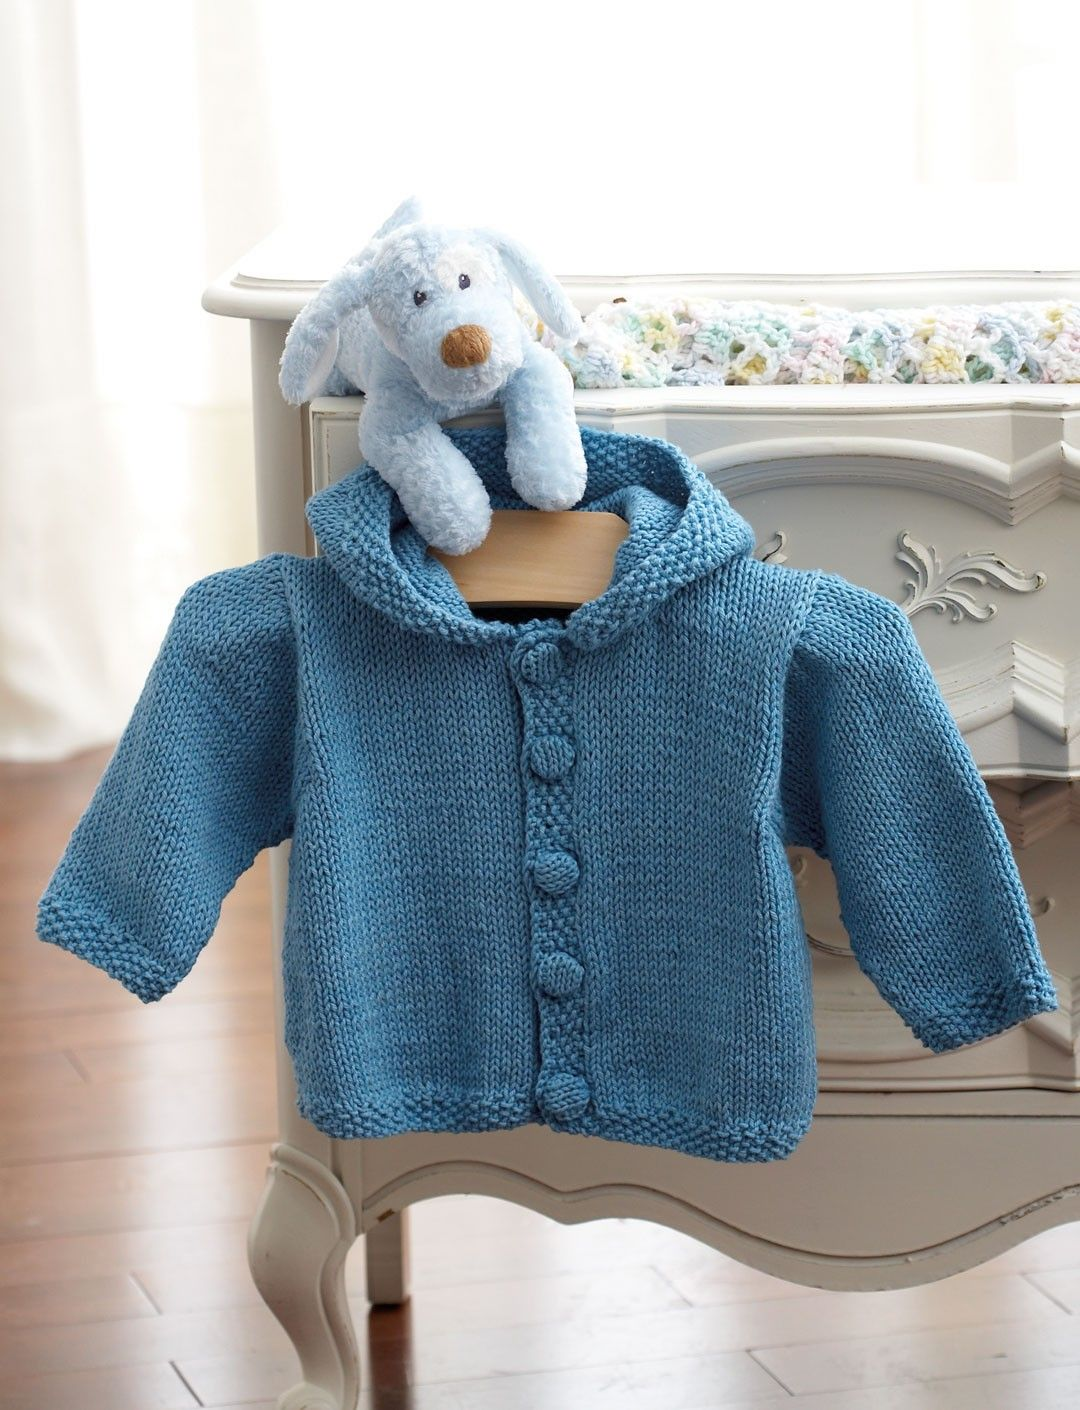 Knit Hoodie | Knitting patterns | Pinterest | Patterns, Baby ...